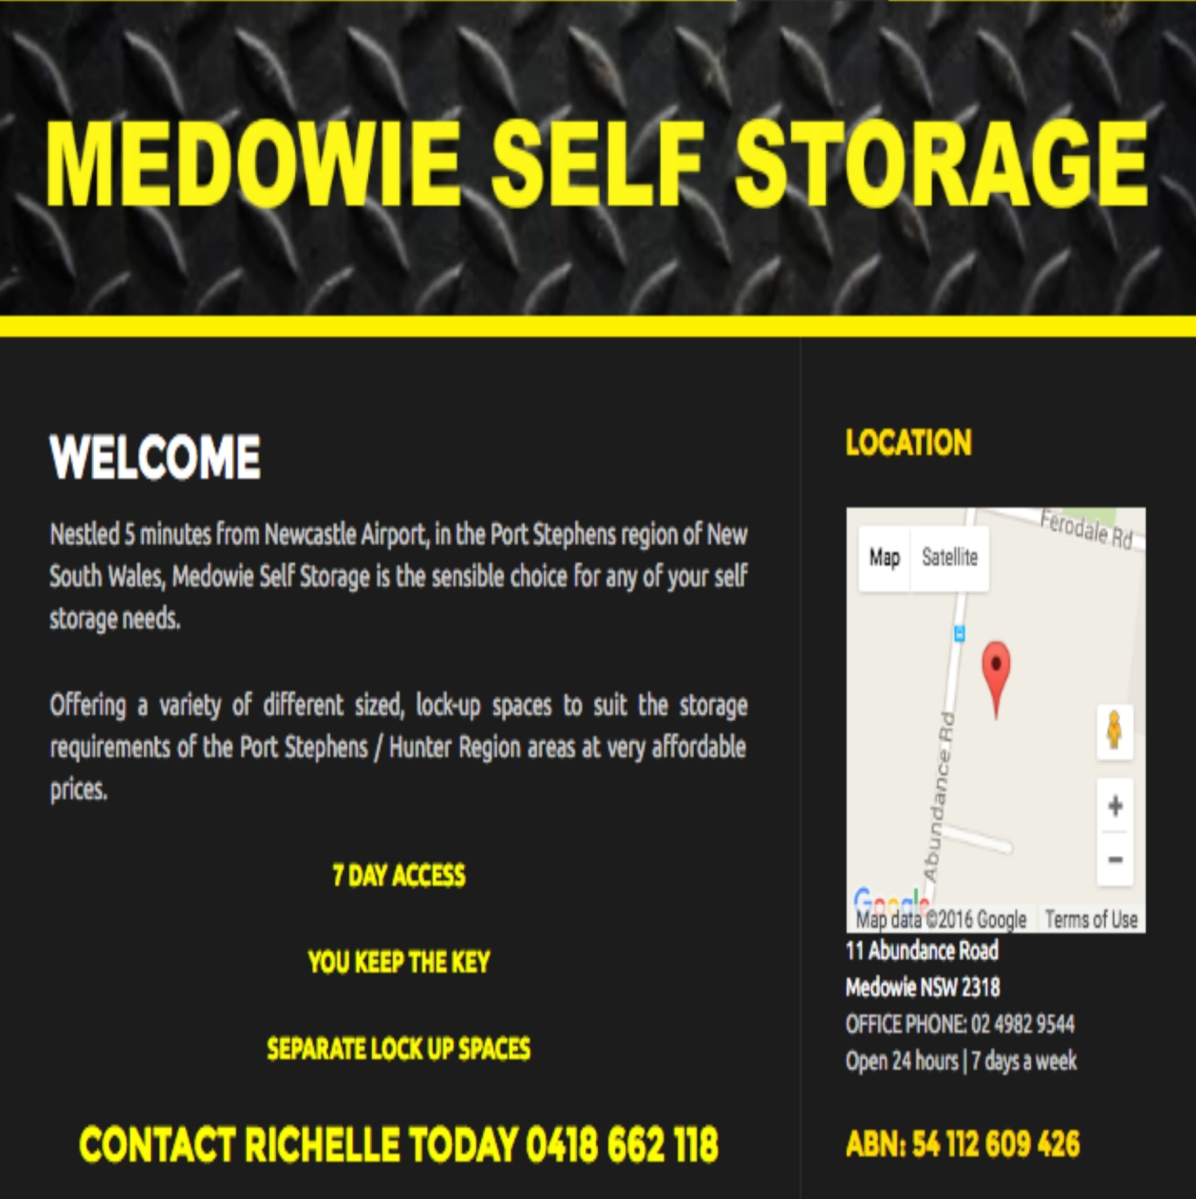 Medowie Self Storage Storage At An Affordable Price